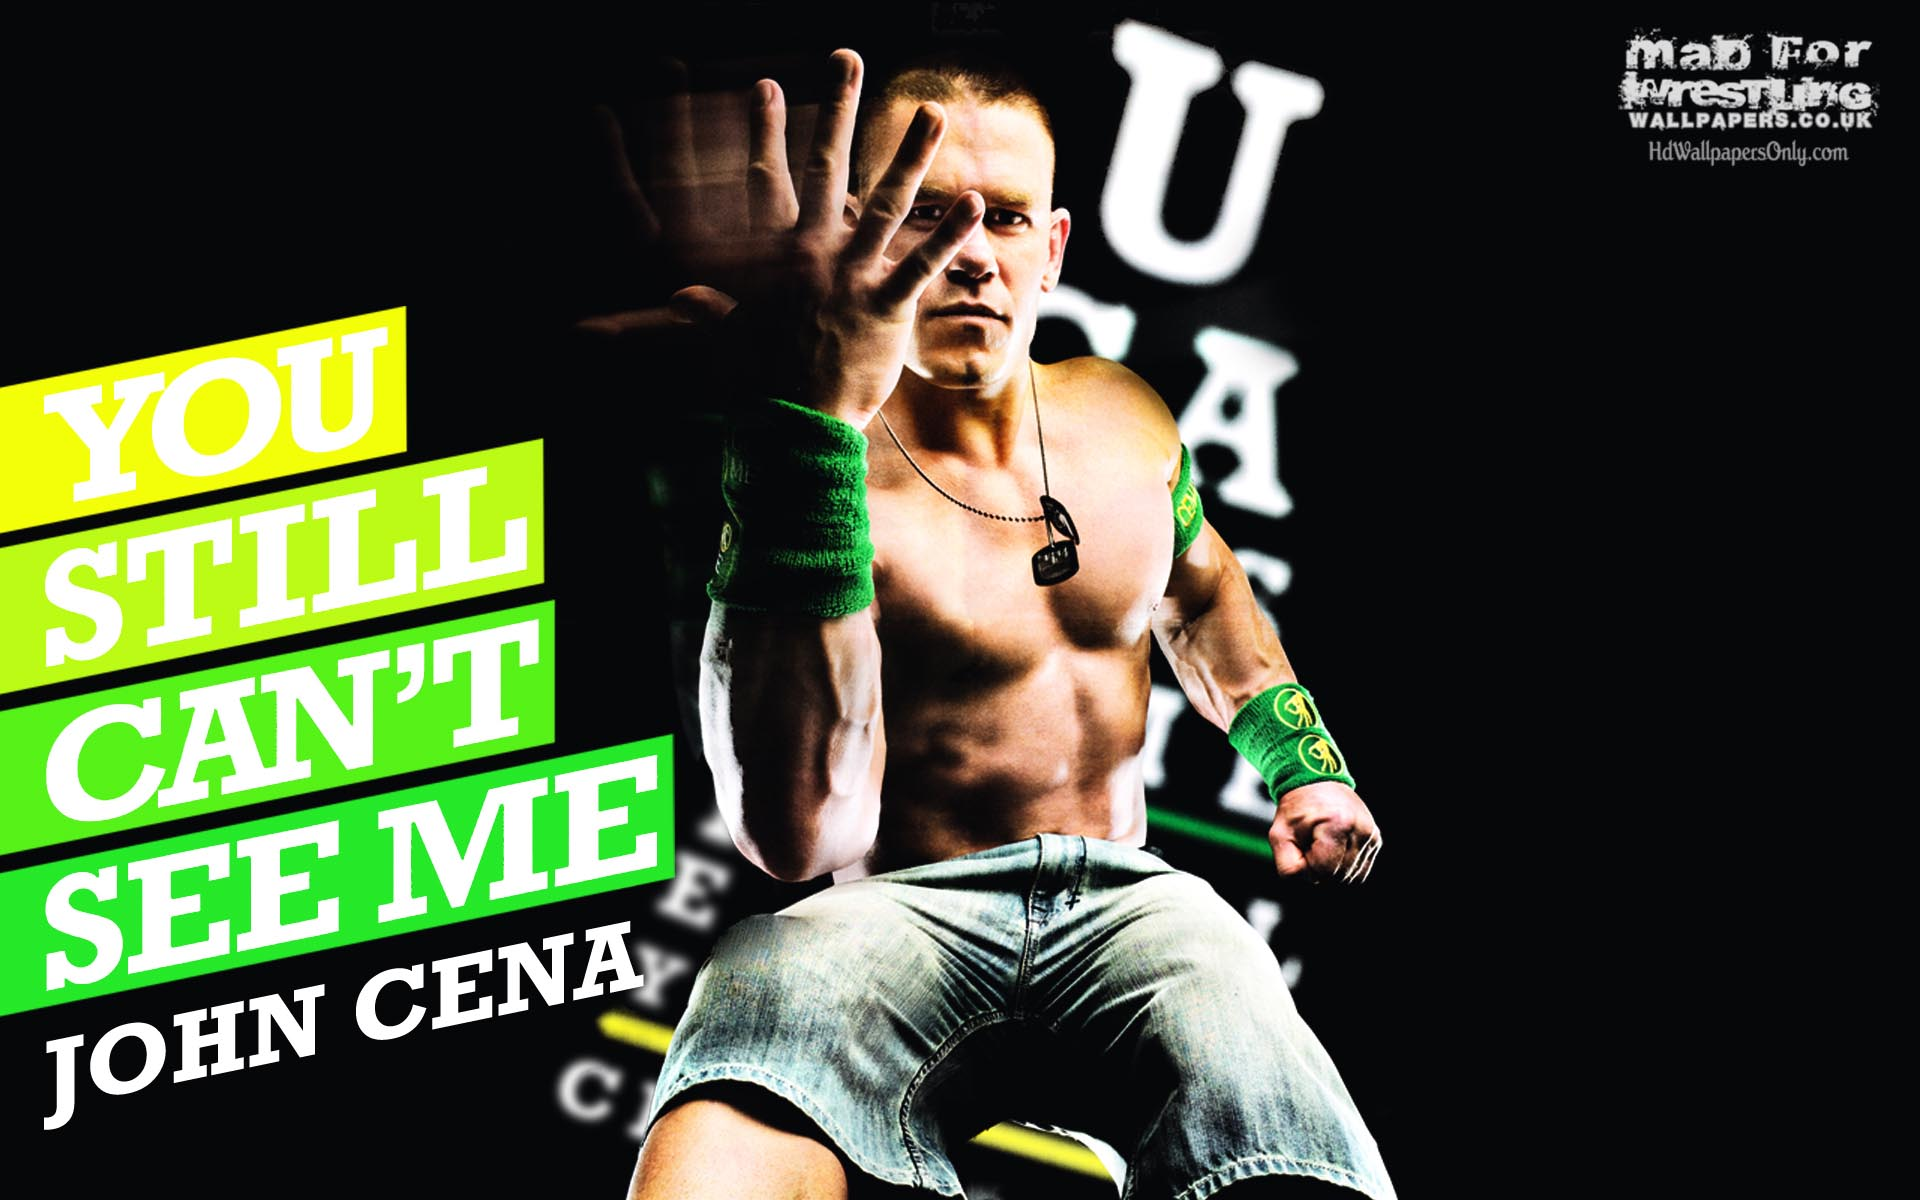 John Cena Pictures hd and john cena hd wallpapers are specially collected for the the lovers of wwe. Feel free to download and enjoy.